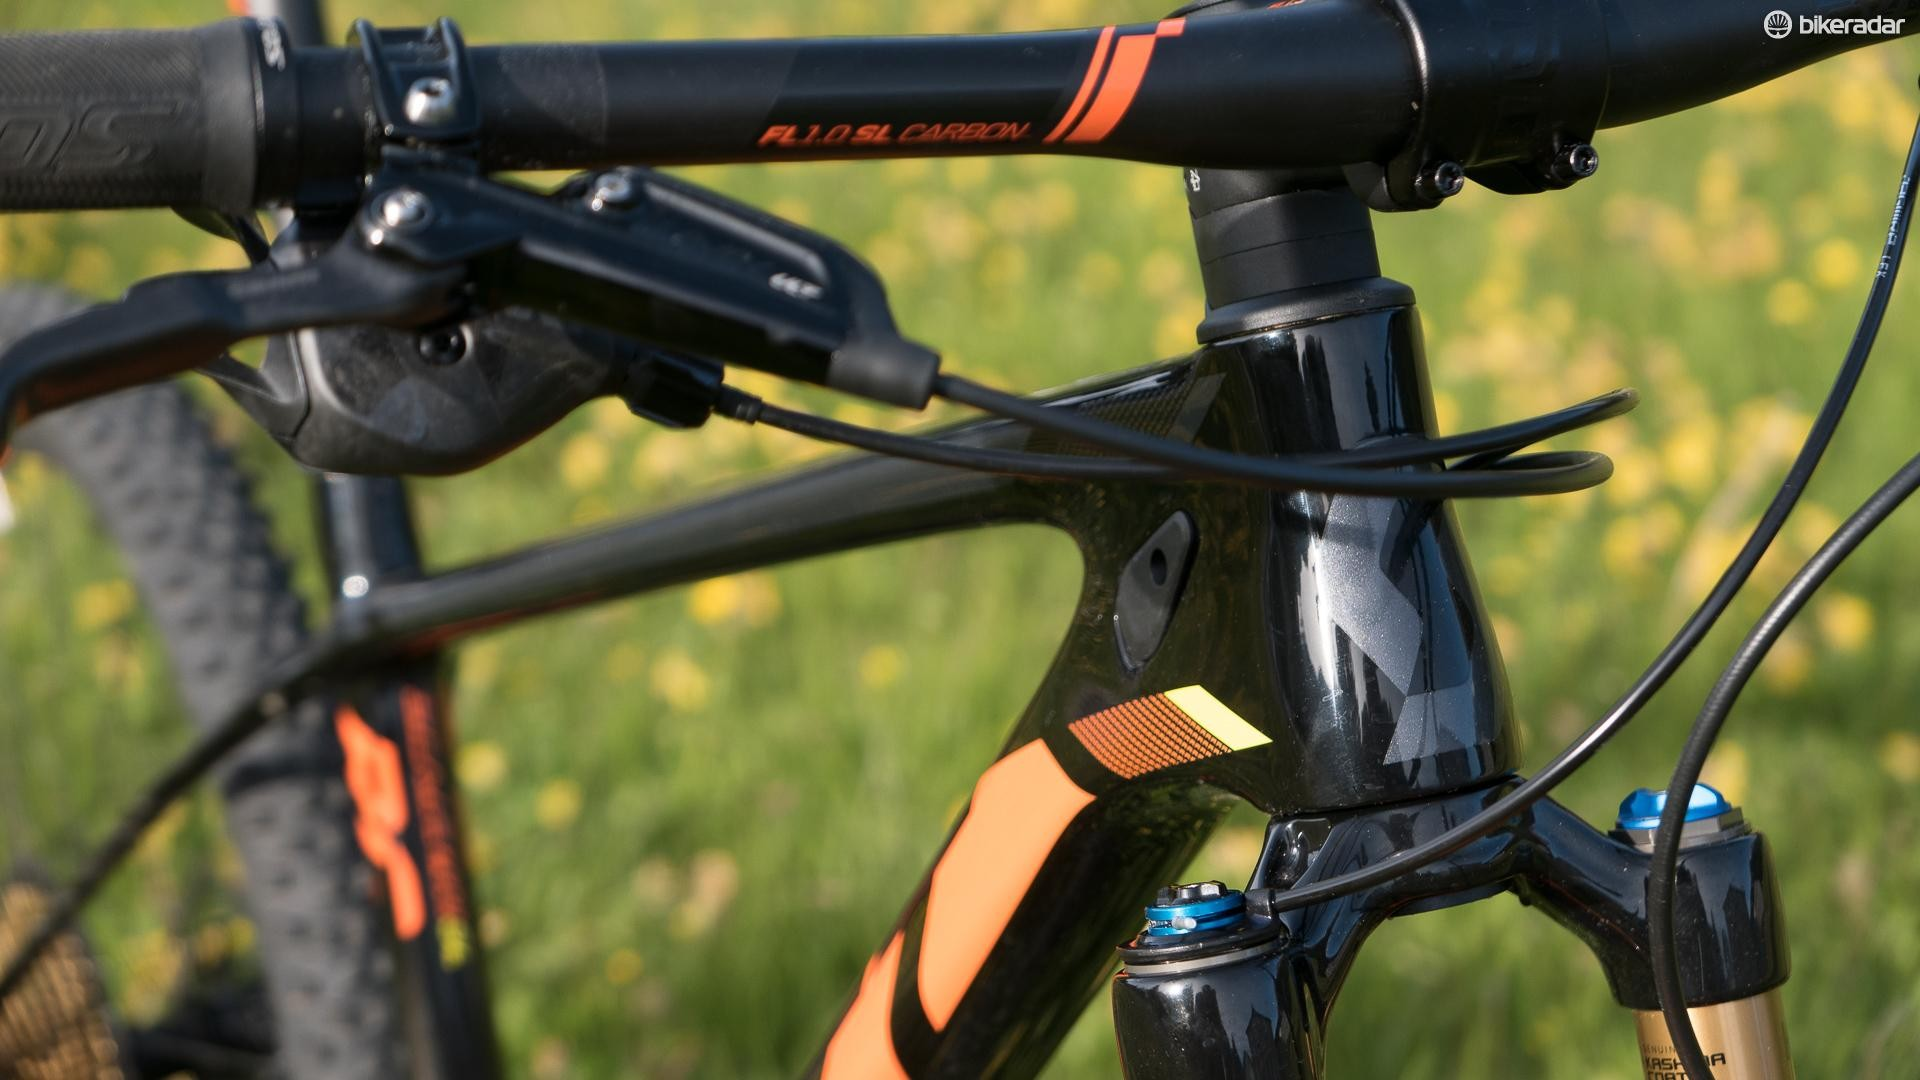 The headtubes on all the bikes have been designed to be as short as possible to allow a slammed front end